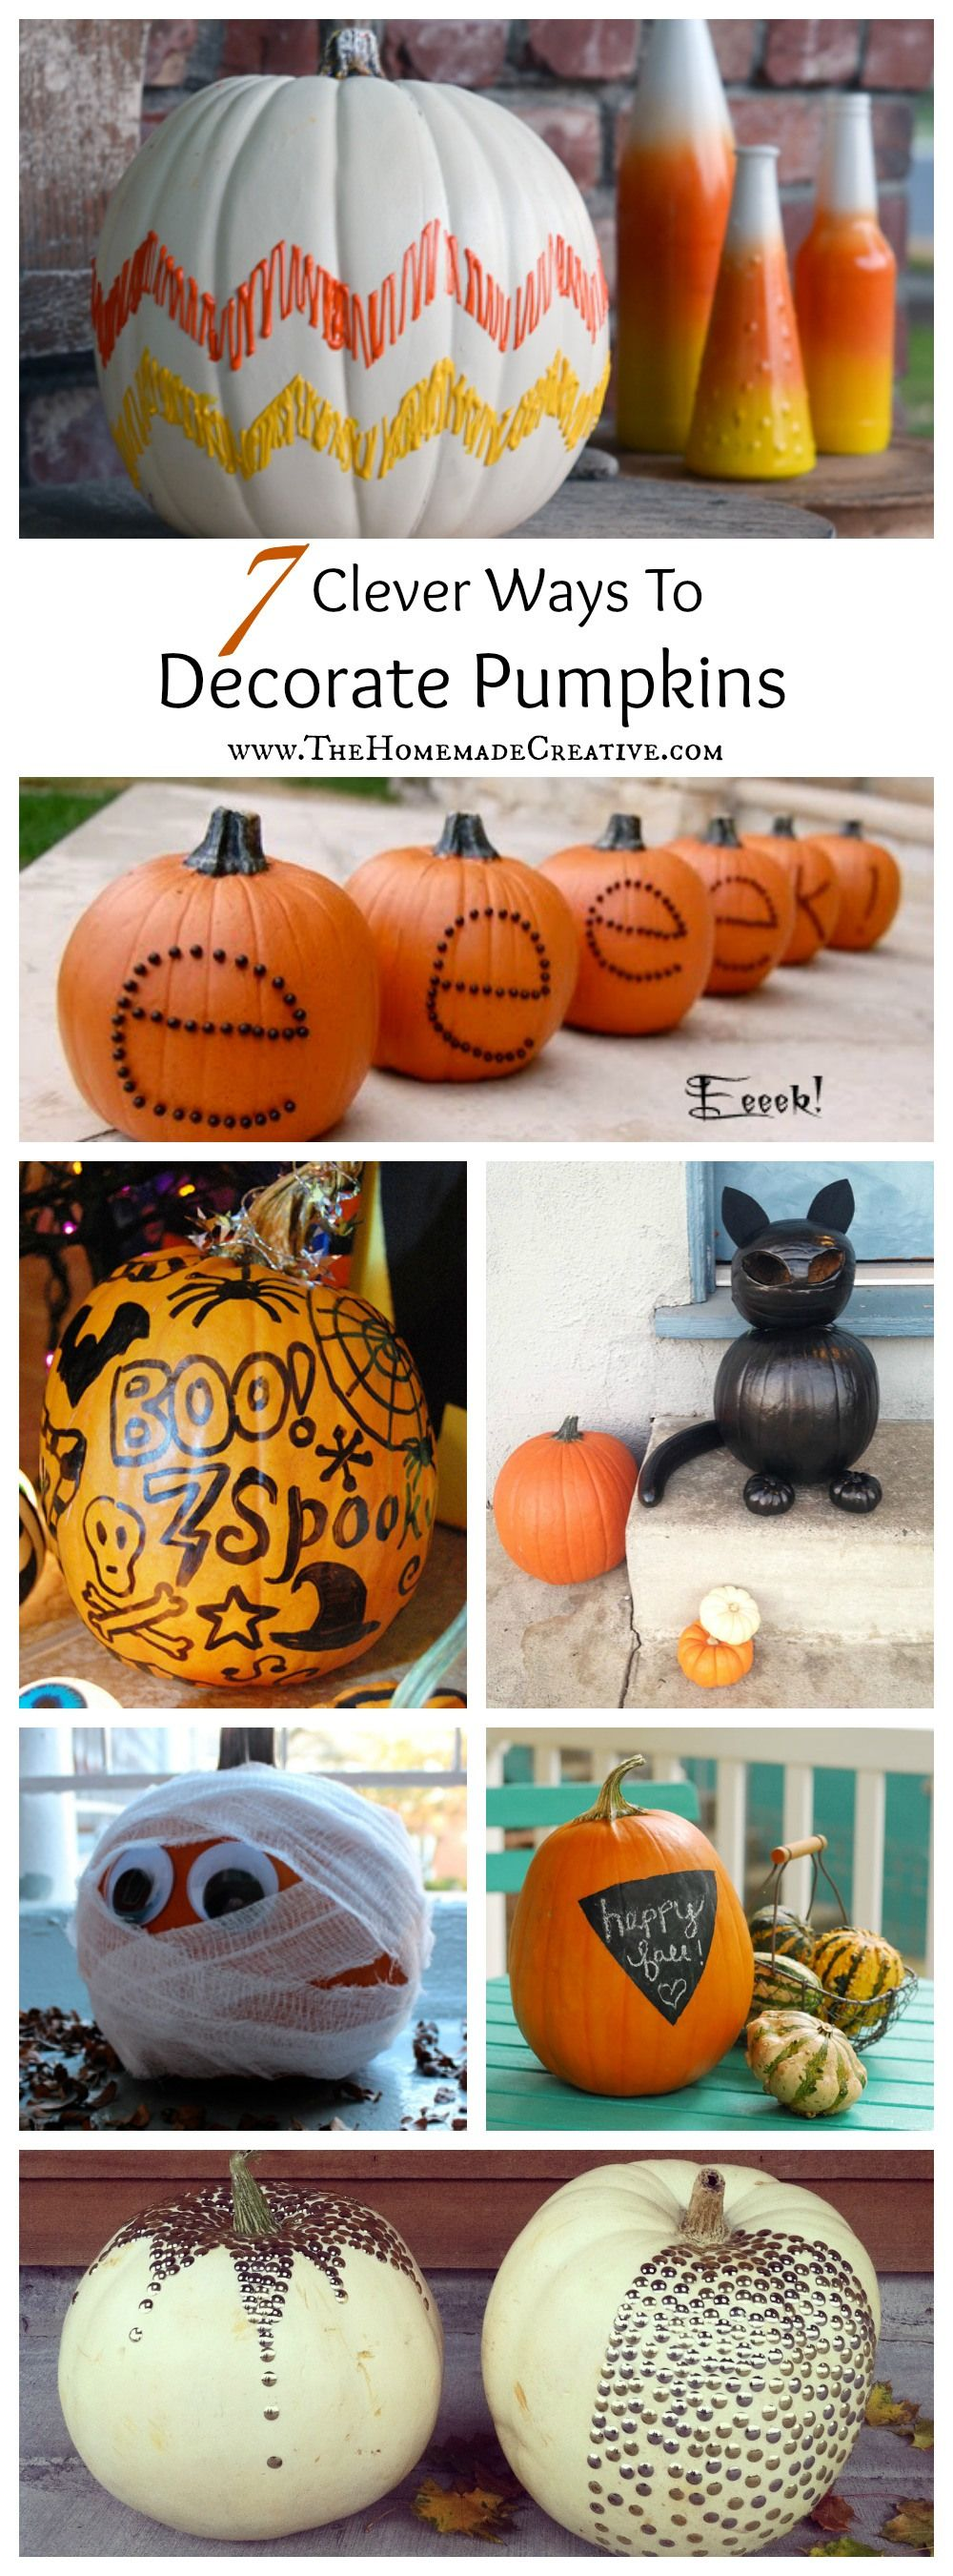 7 Clever Ways To Decorate Pumpkins | The Homemade Creative ...